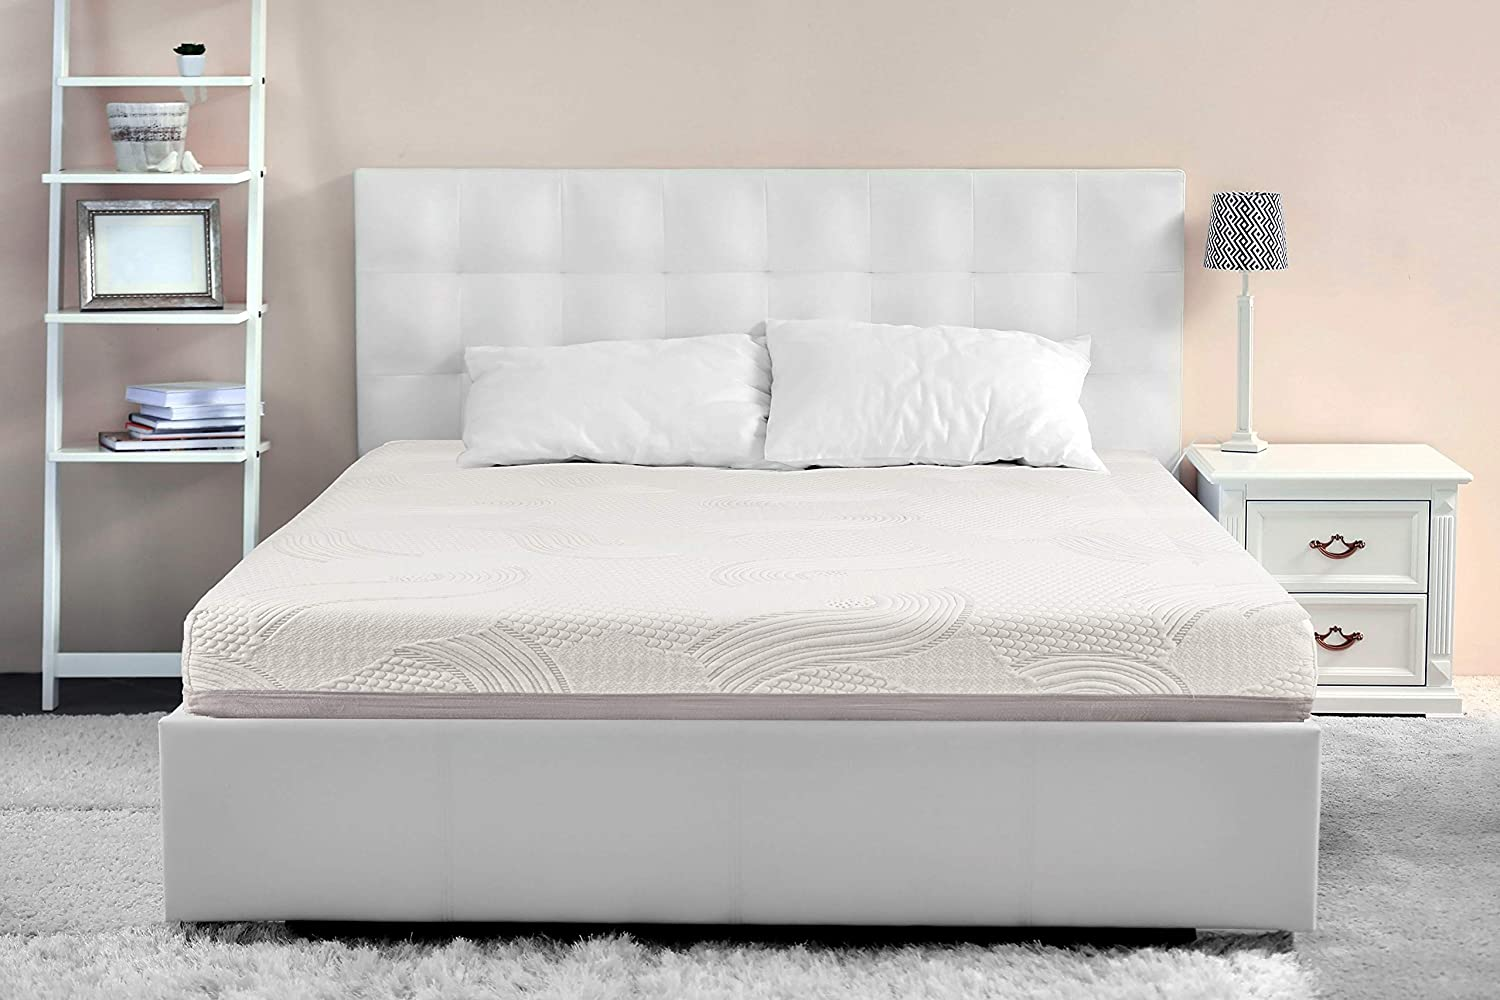 Irvine sale Home Collection King Size Mattre Foam 10-Inch Ranking TOP8 Gel Memory